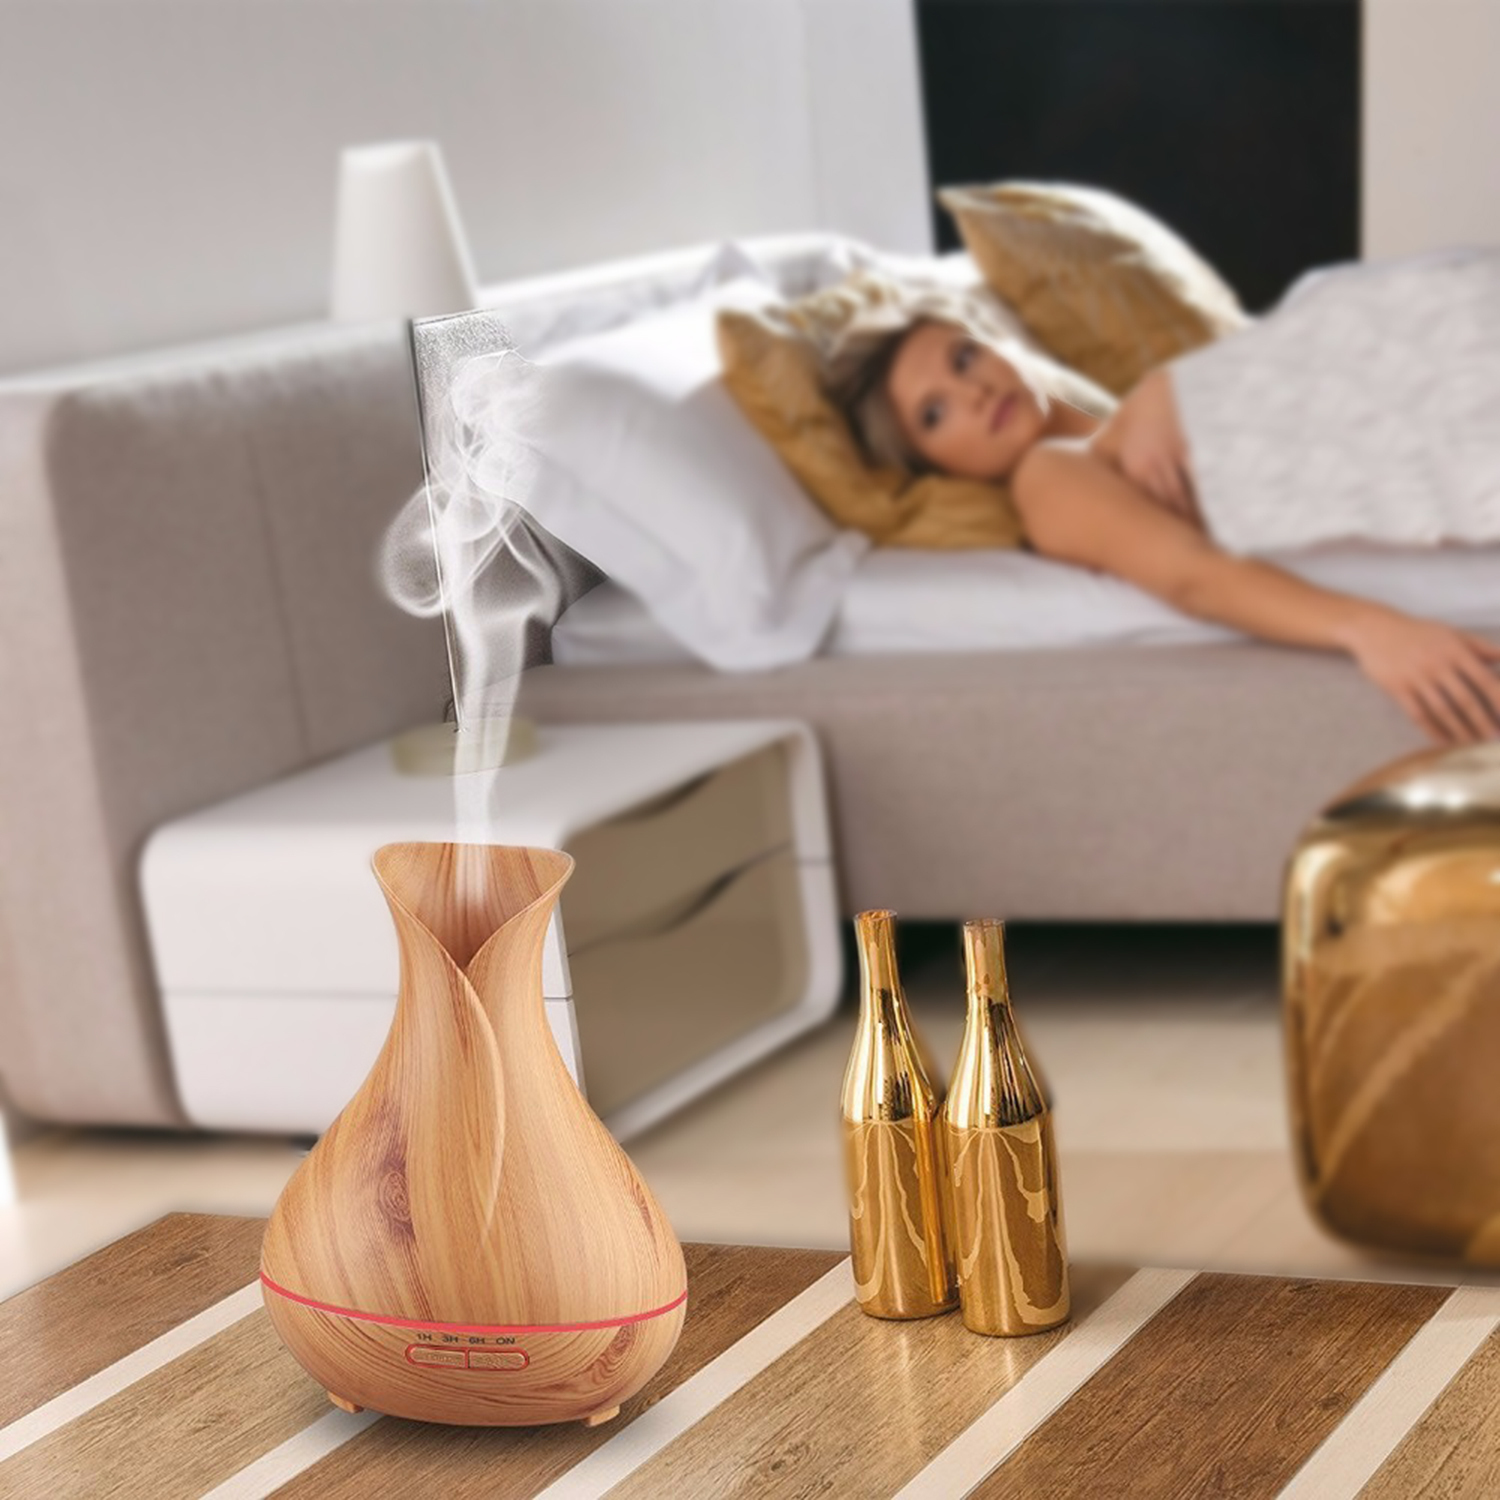 400ml wood grain essential oil diffuser humidifier air